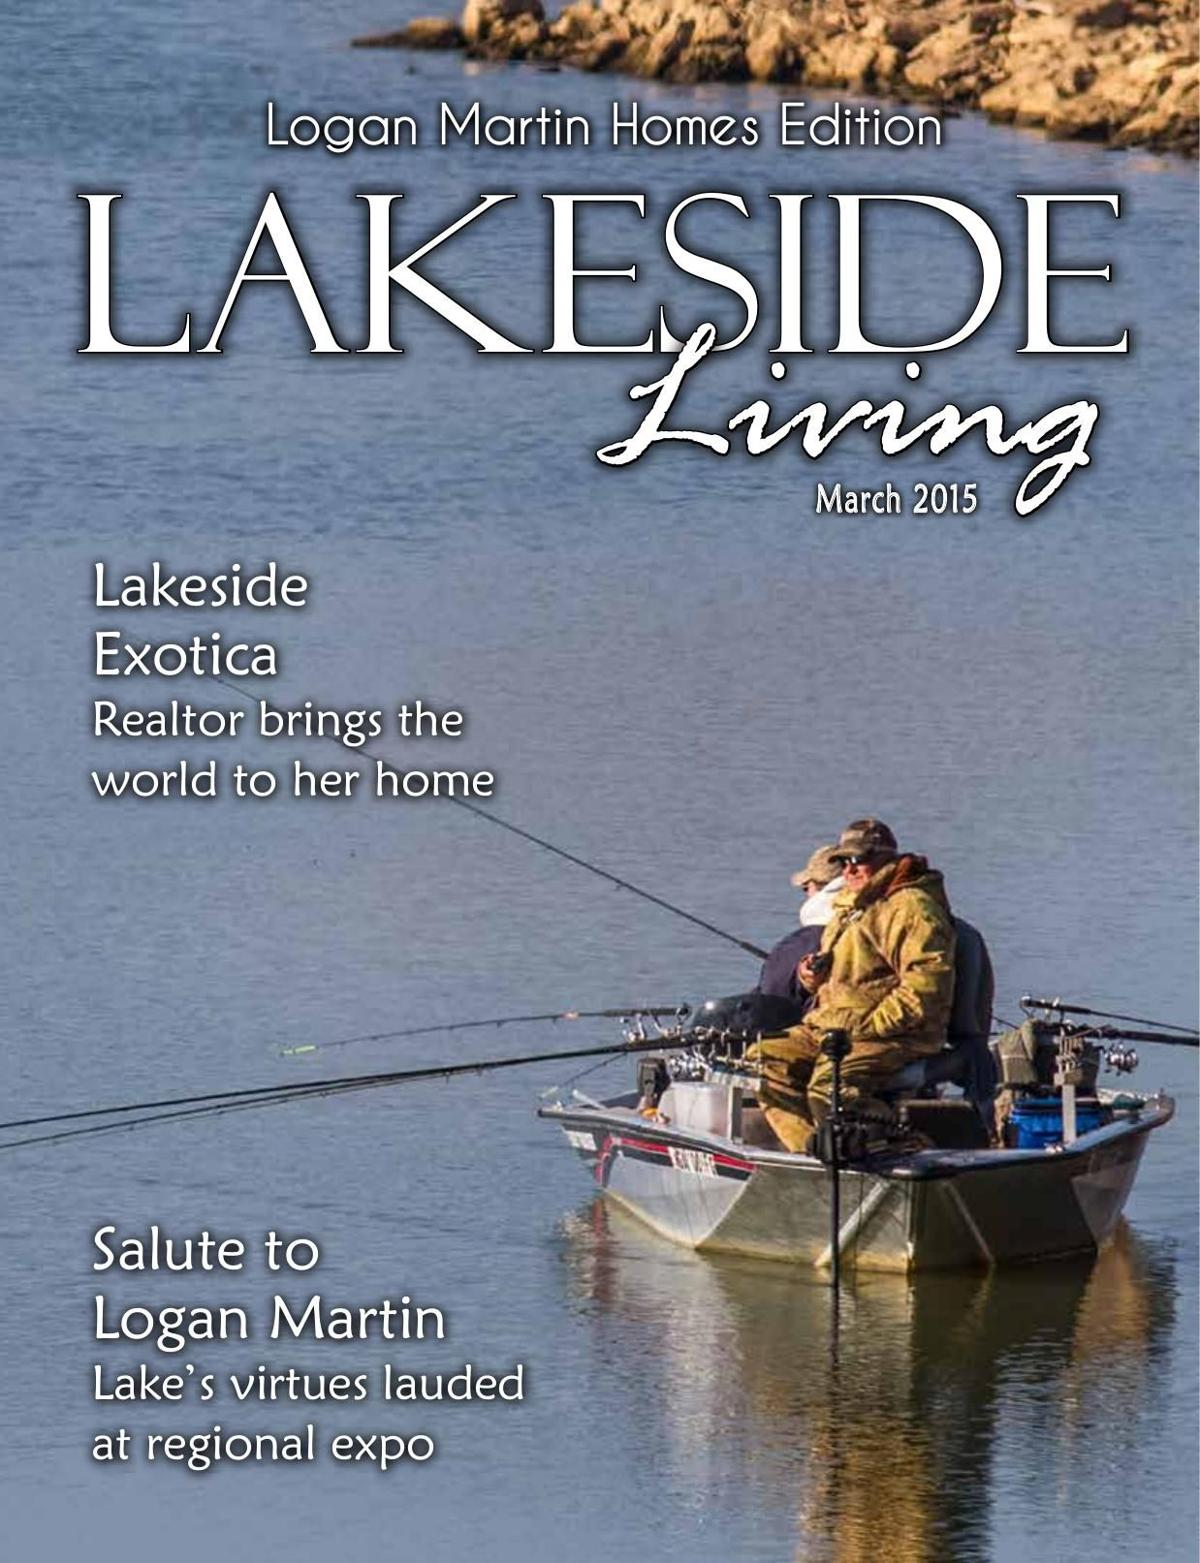 Lakeside - March 2015